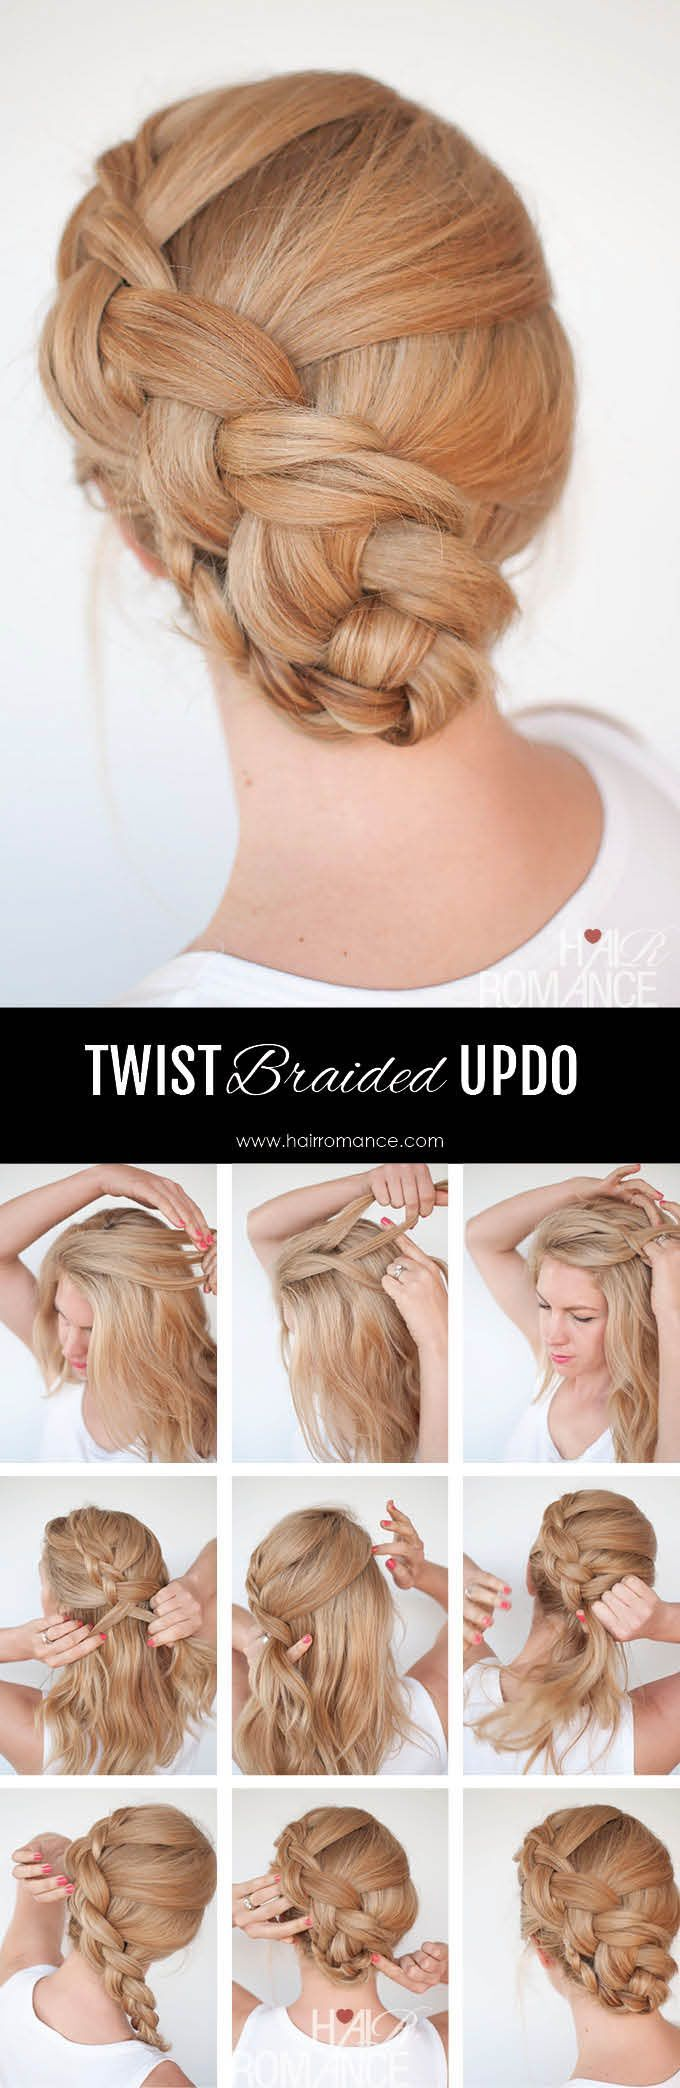 25 Step By Step Tutorial For Beautiful Hair Updos ❤ - Page 2 of 5 - Trend To…